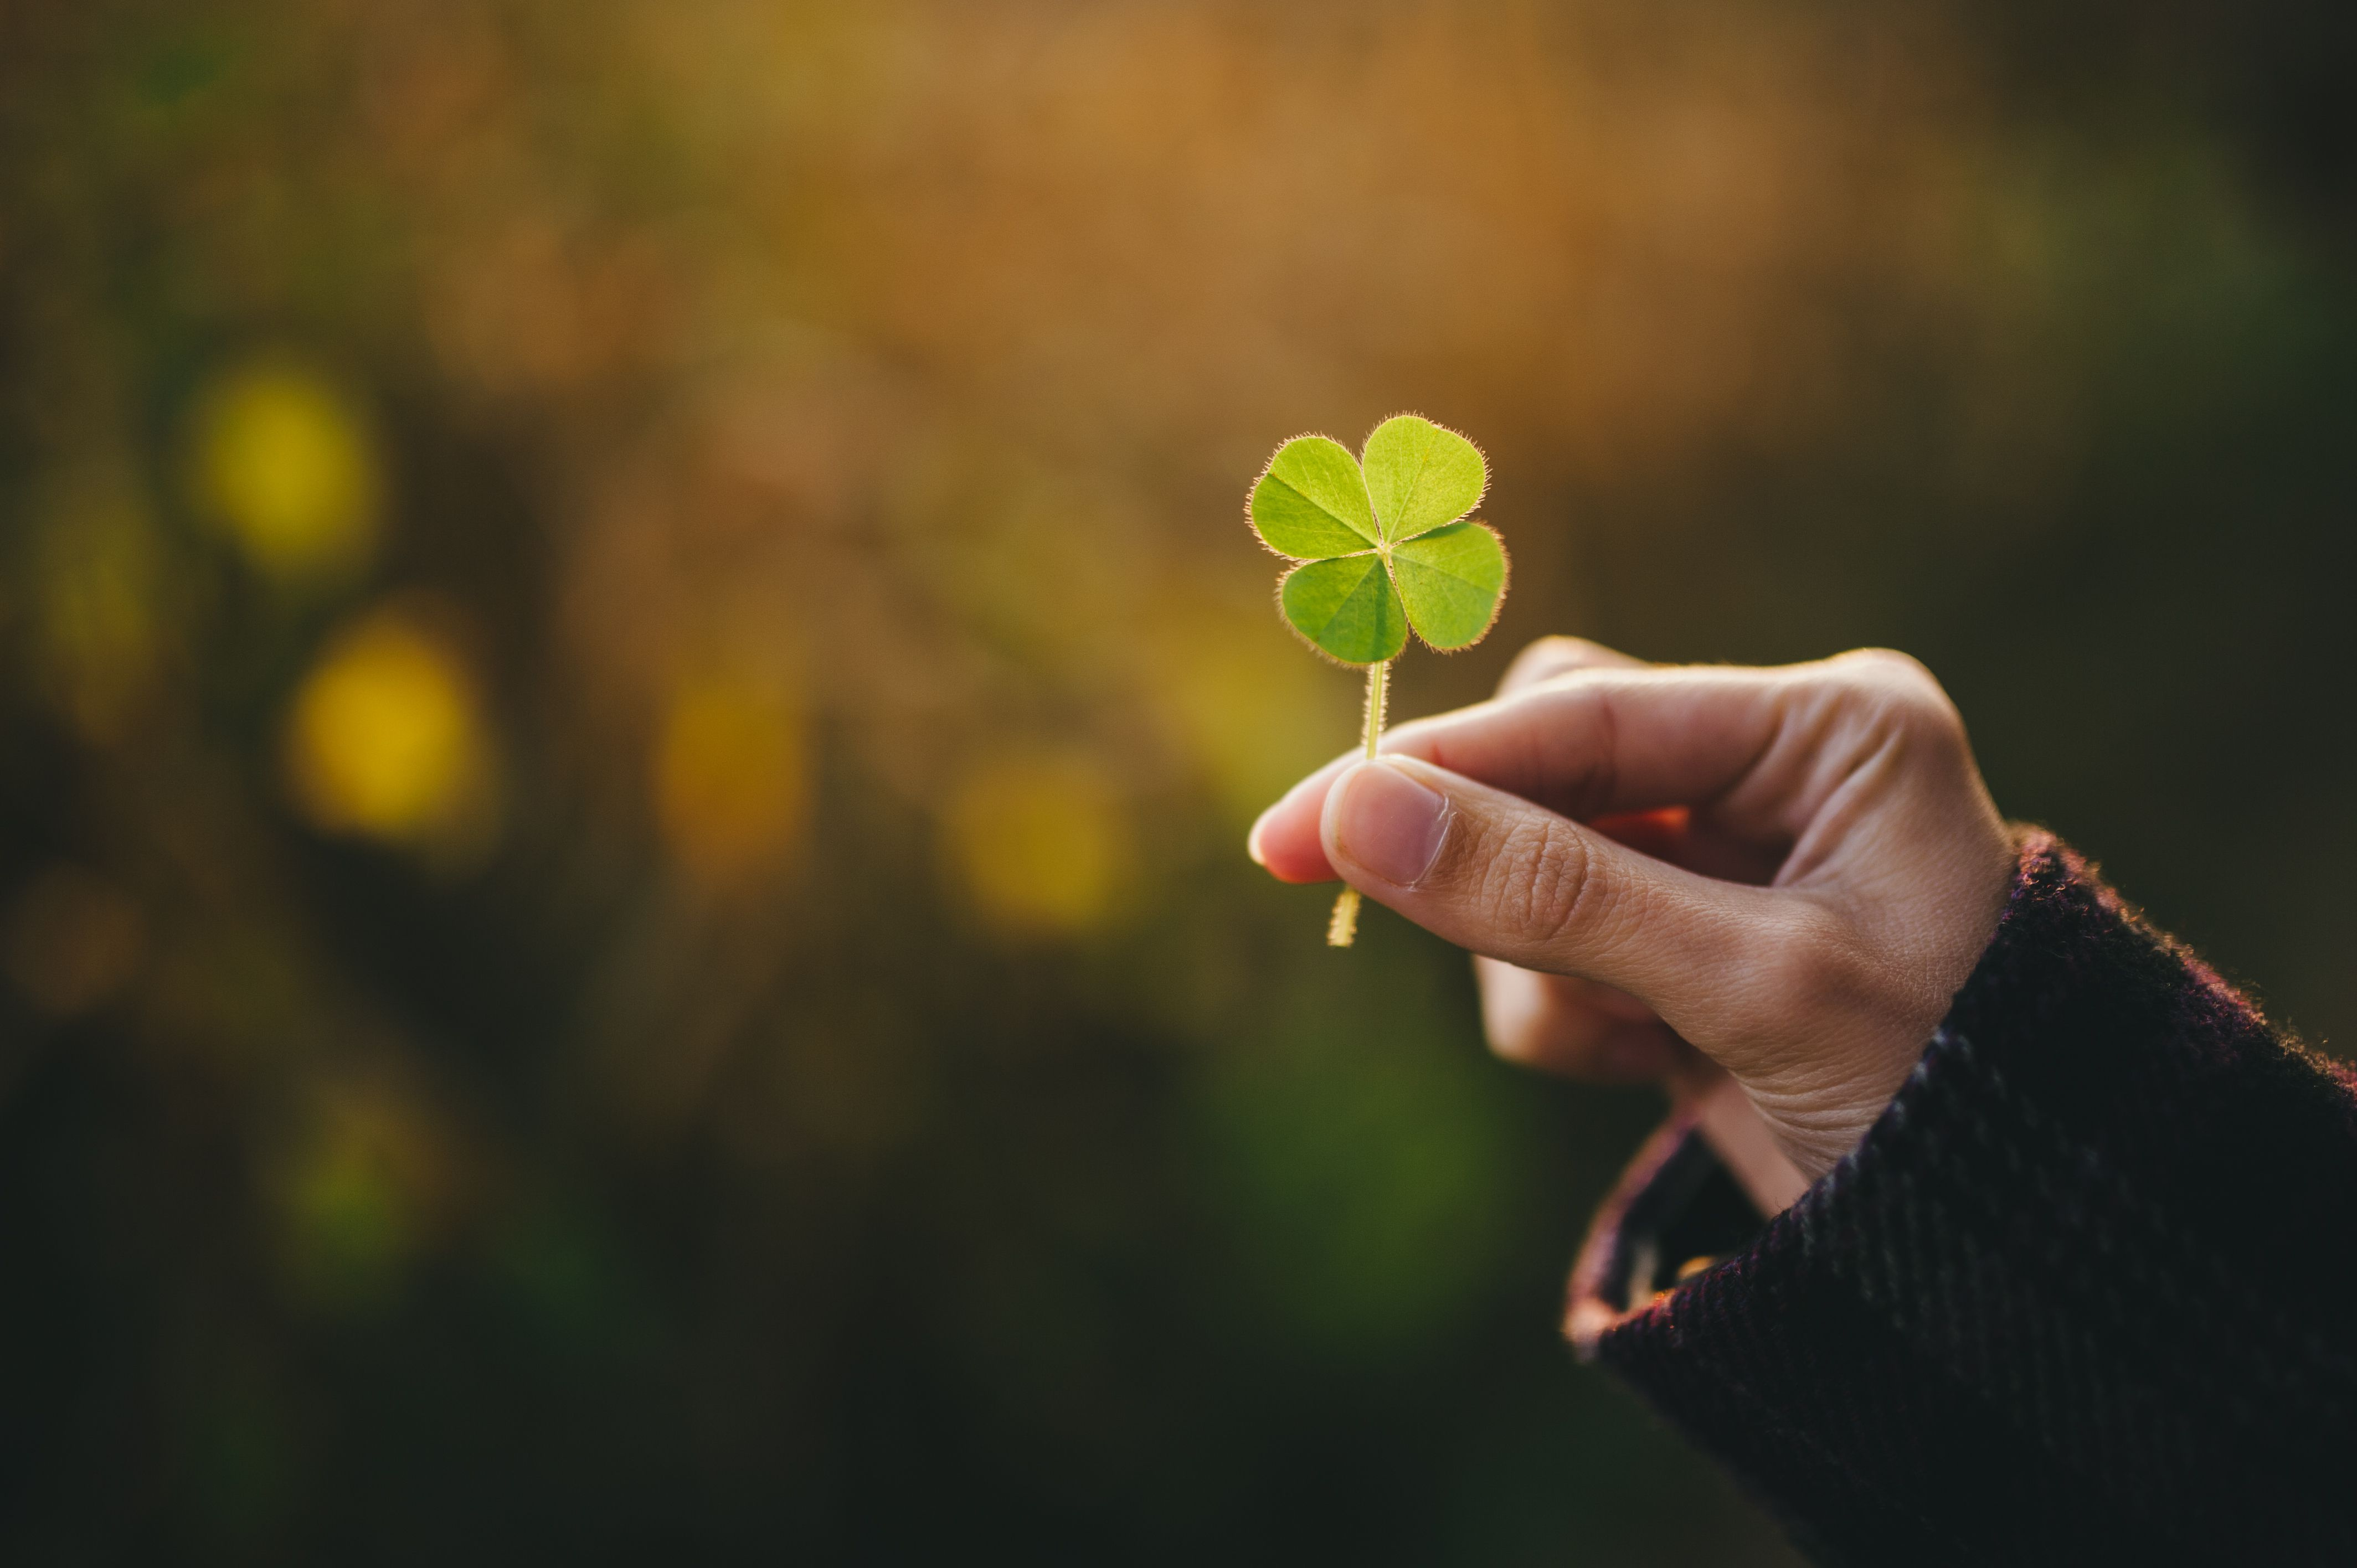 12 Lucky Charms to Attract Good Luck in Your Life 4256x2832